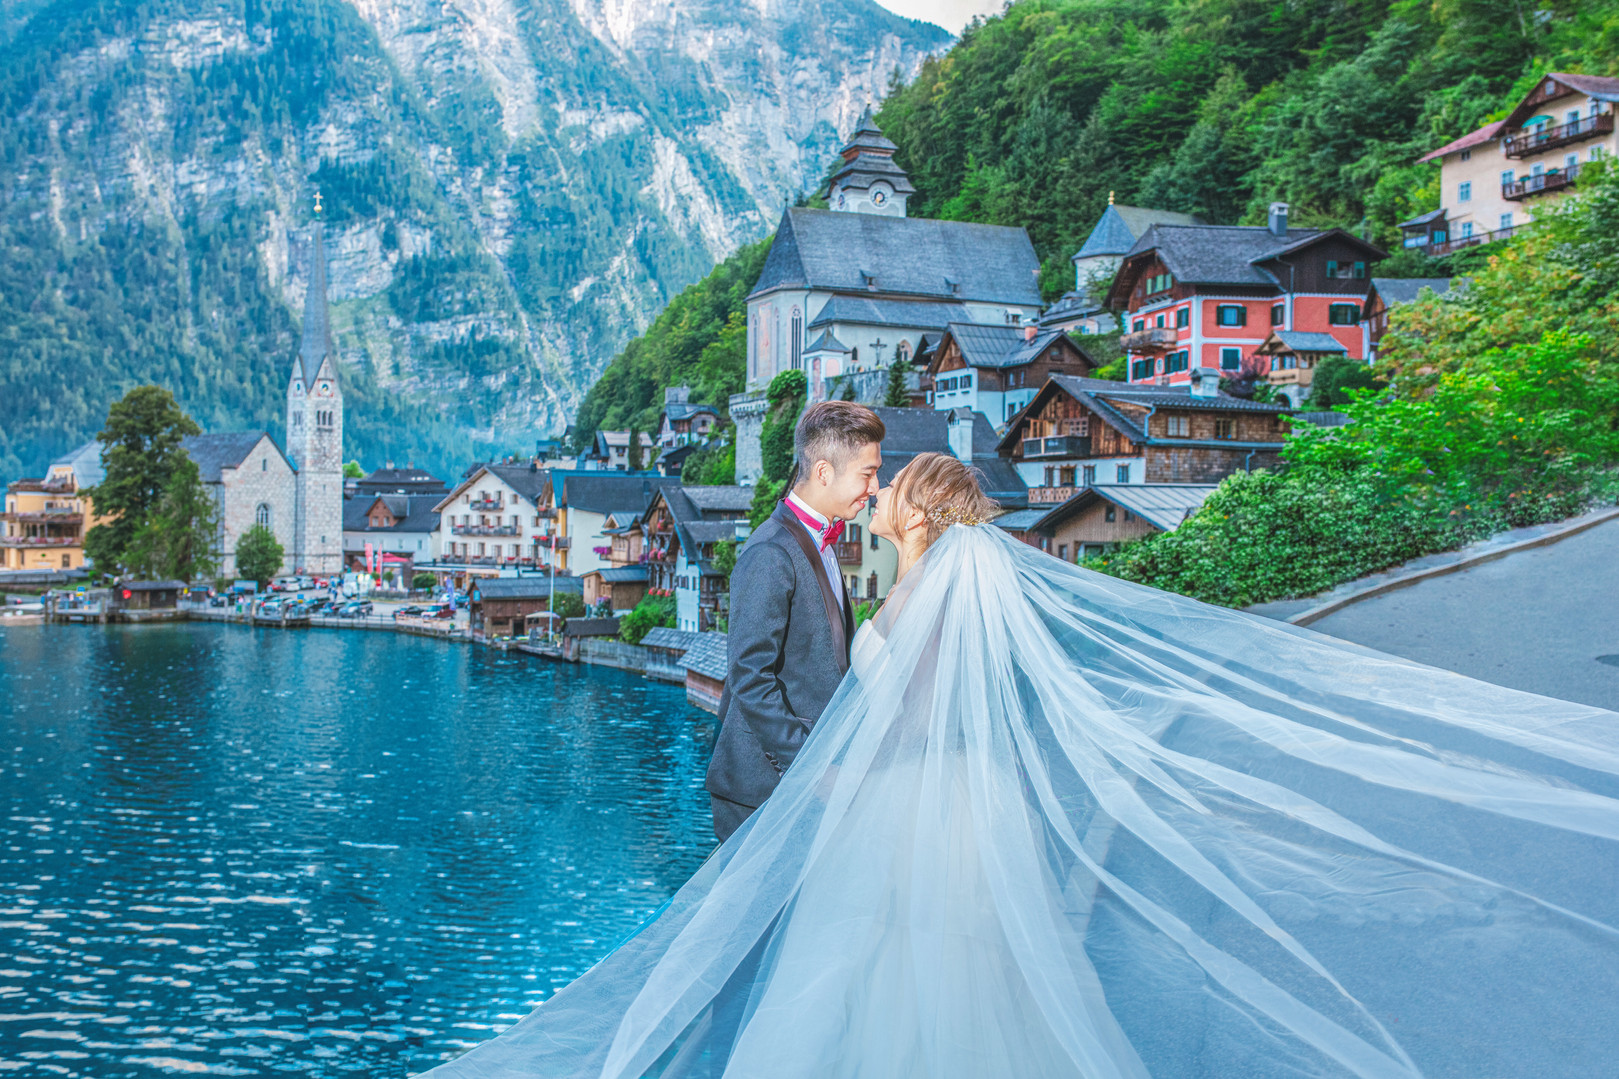 Hallstatt Pre-Wedding Photography